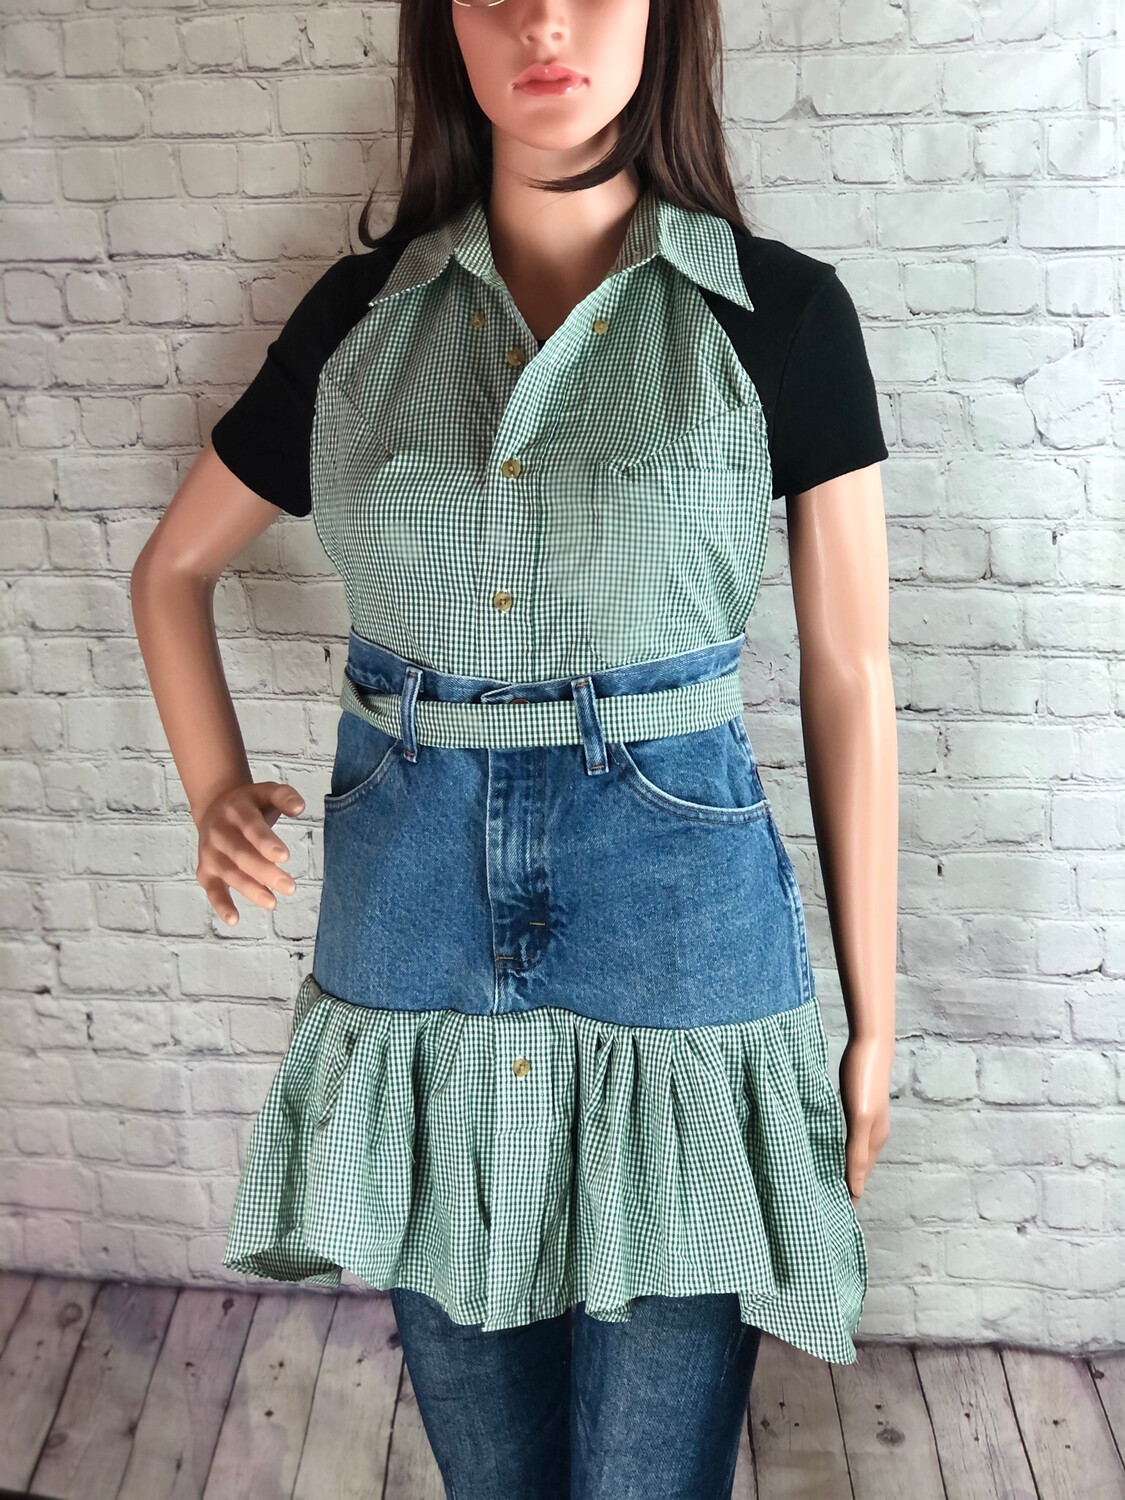 S Threads Crafters Bakers Apron Repurposed Button Up Dress Shirt W Ruffle